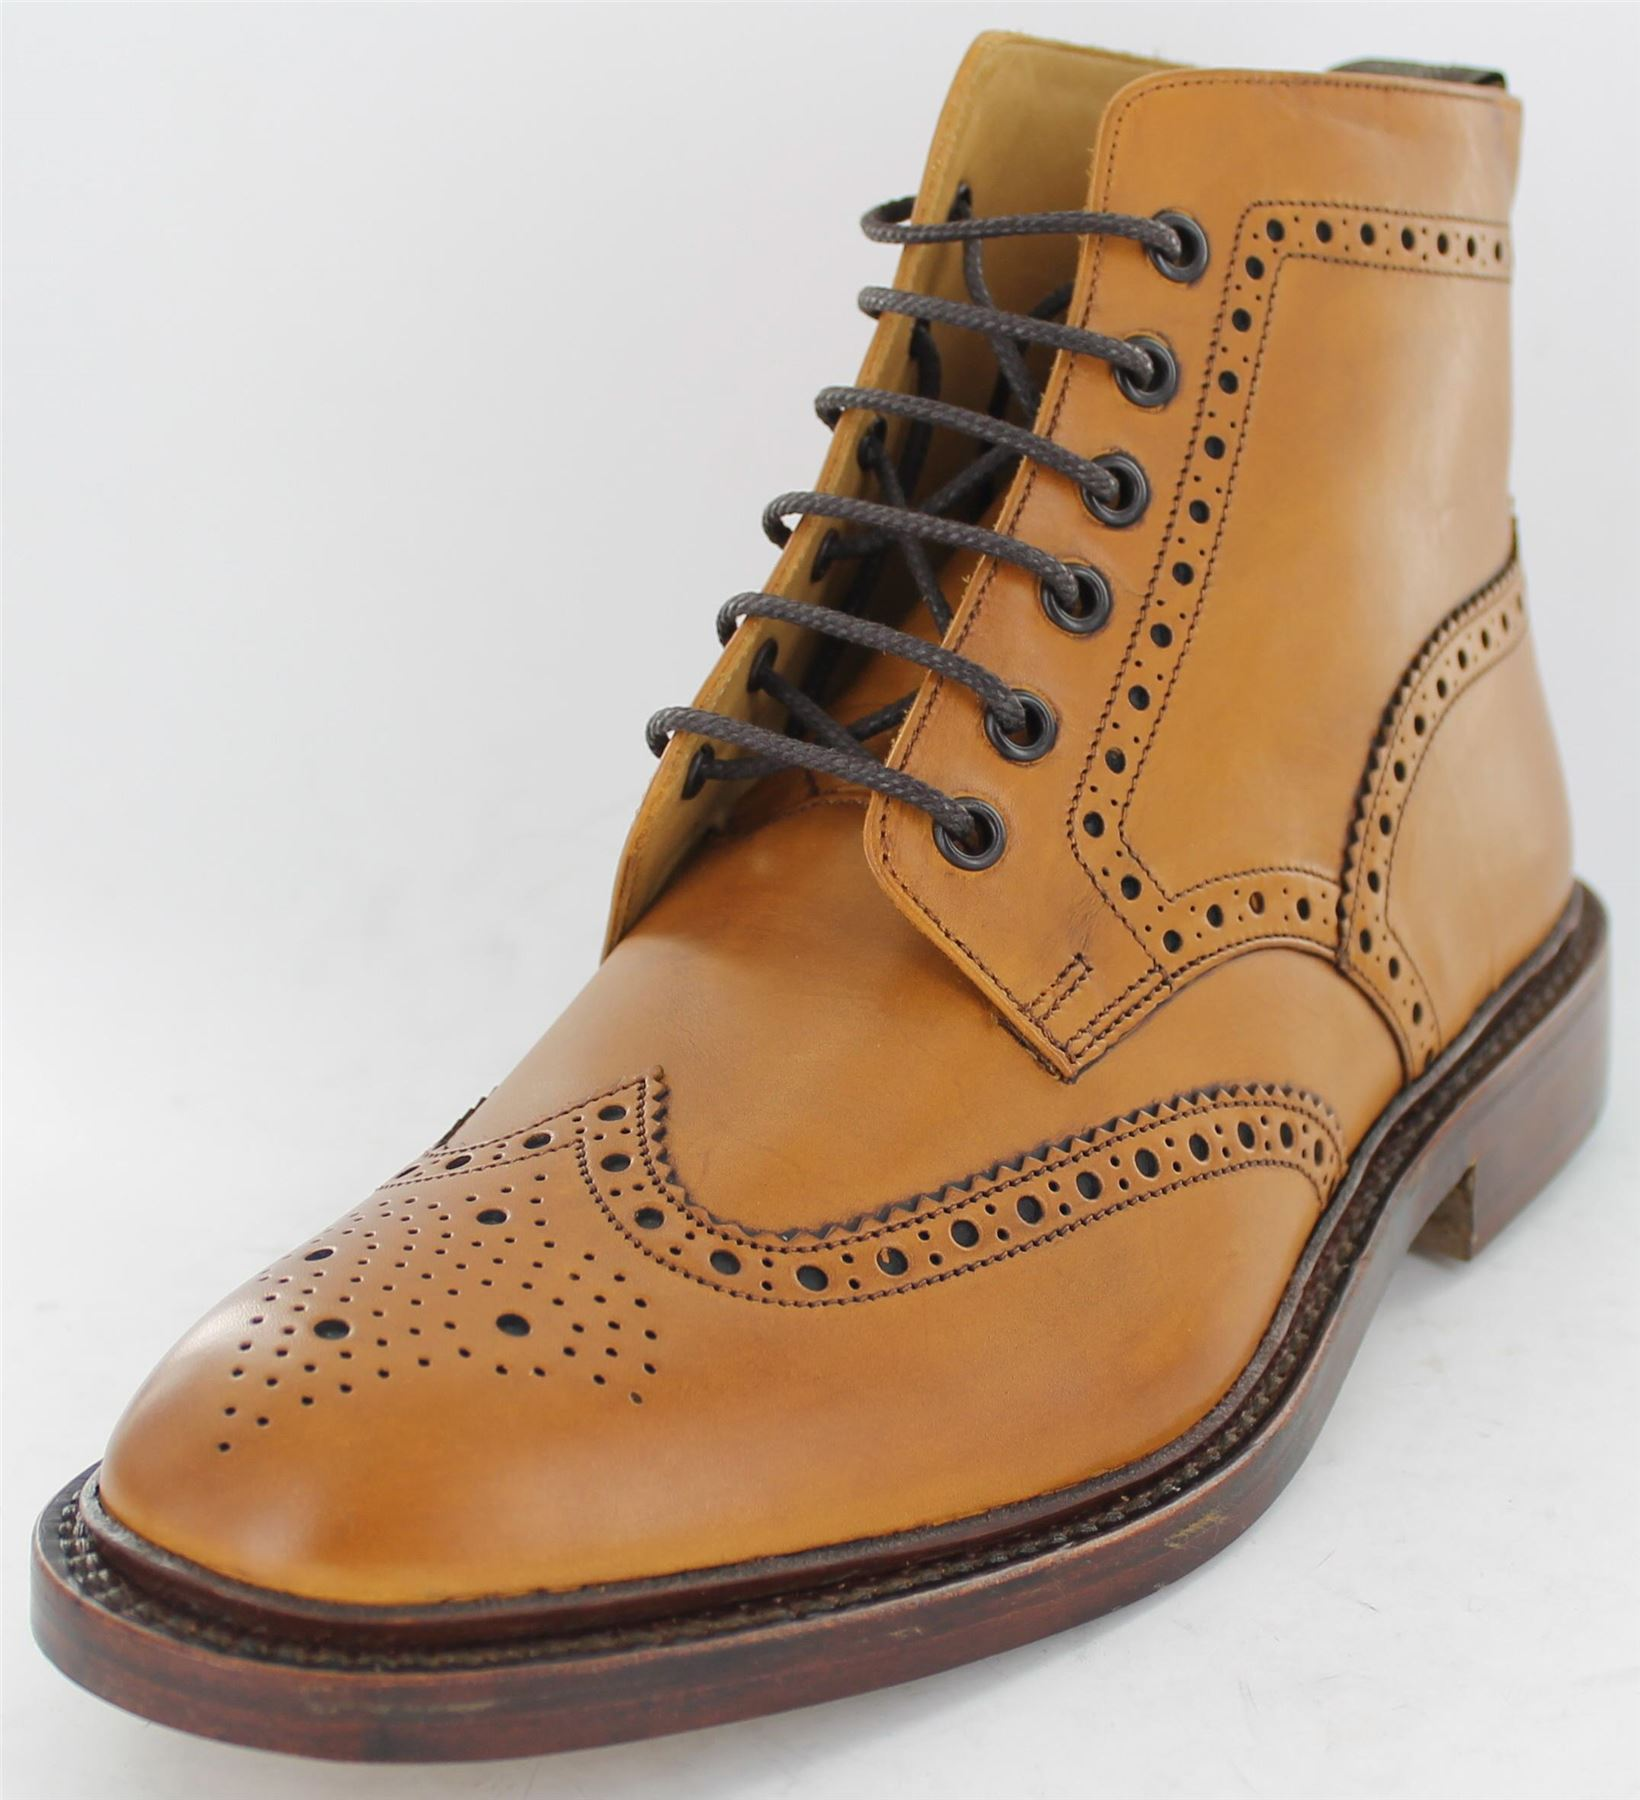 Mens Loake Boots Burford 2 Tan Leather Brogue Style Smart Lace Up ...